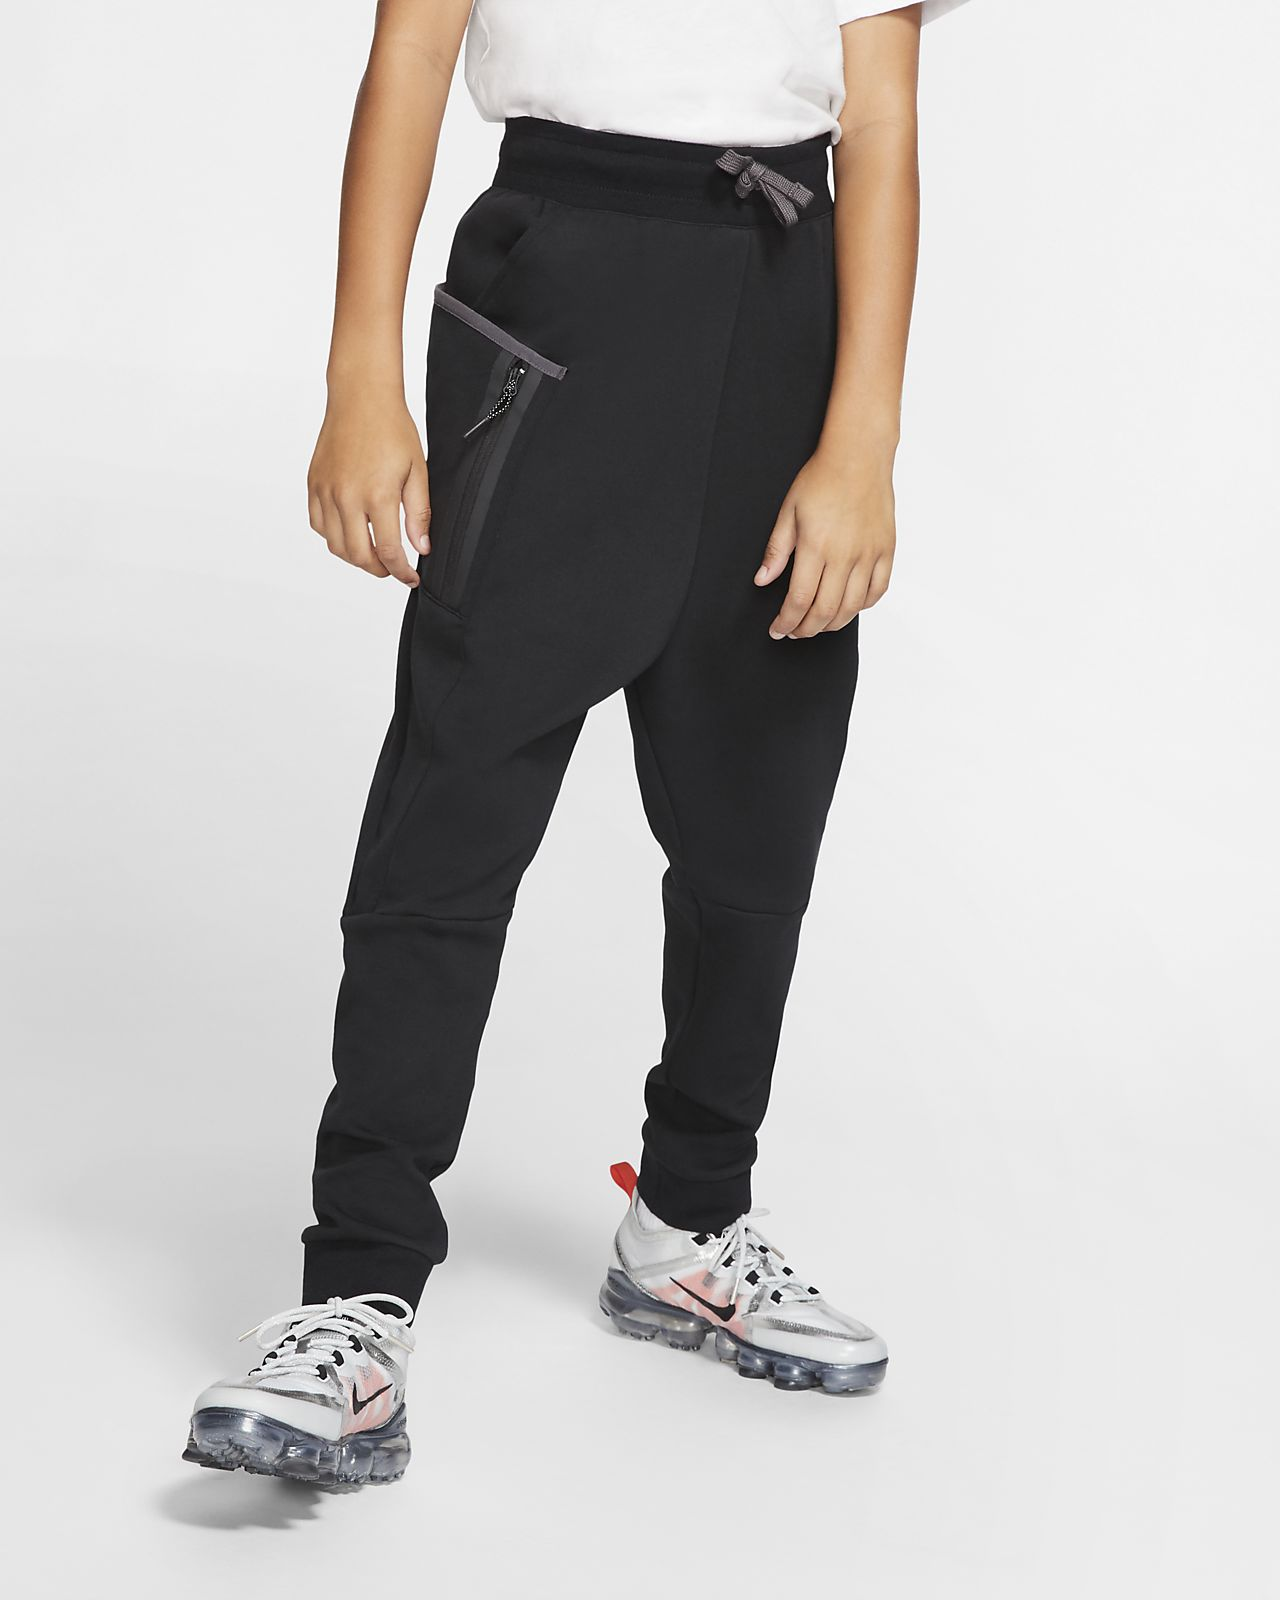 7b63a41c1623 Nike Sportswear Tech Fleece Big Kids  (Boys ) Pants. Nike.com